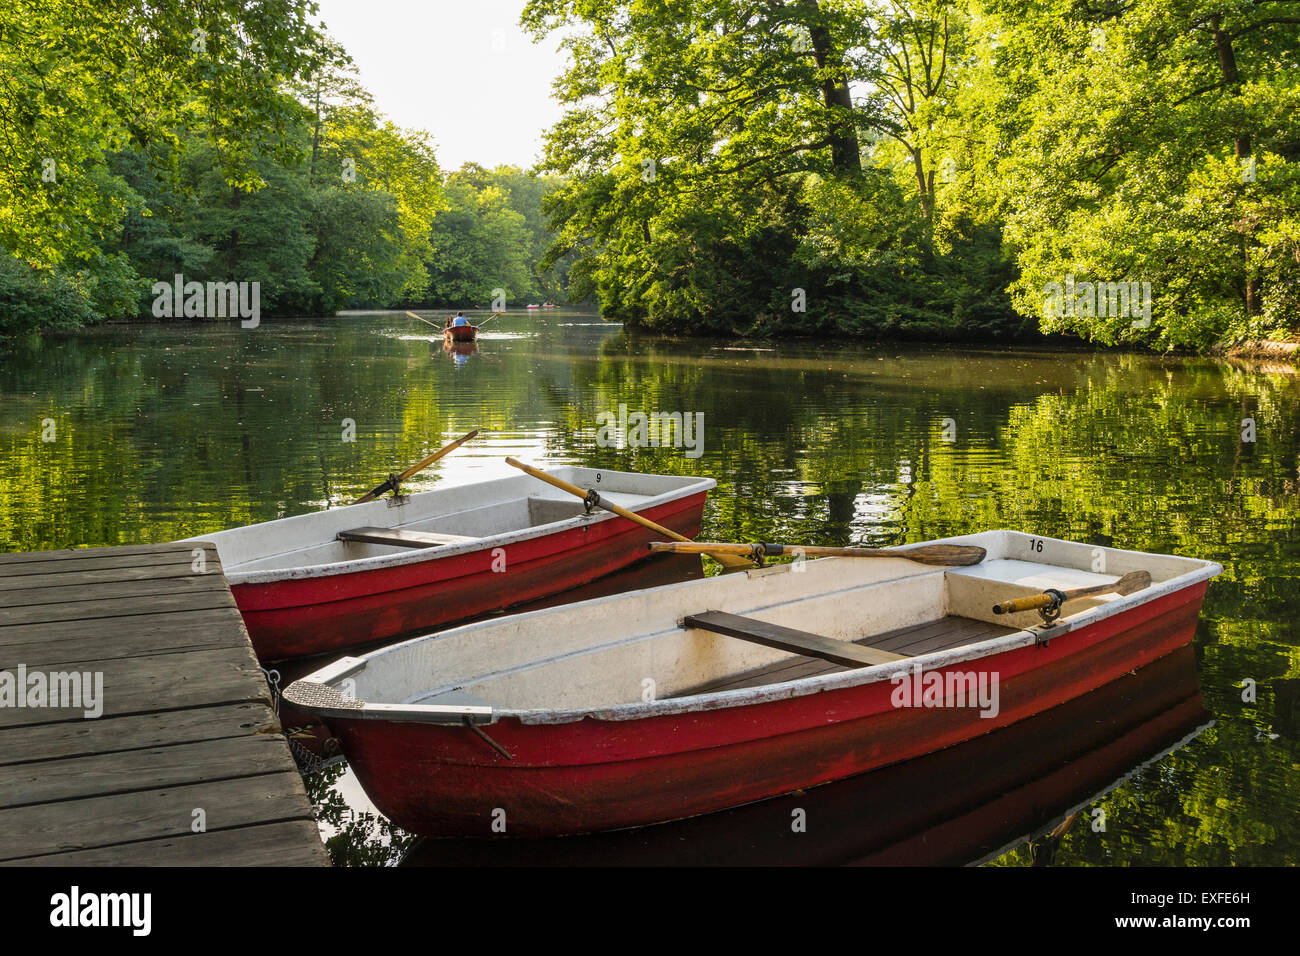 Rowing boats for rent  in summer at Cafe am Neuen See in Tiergarten park in Berlin Germany - Stock Image